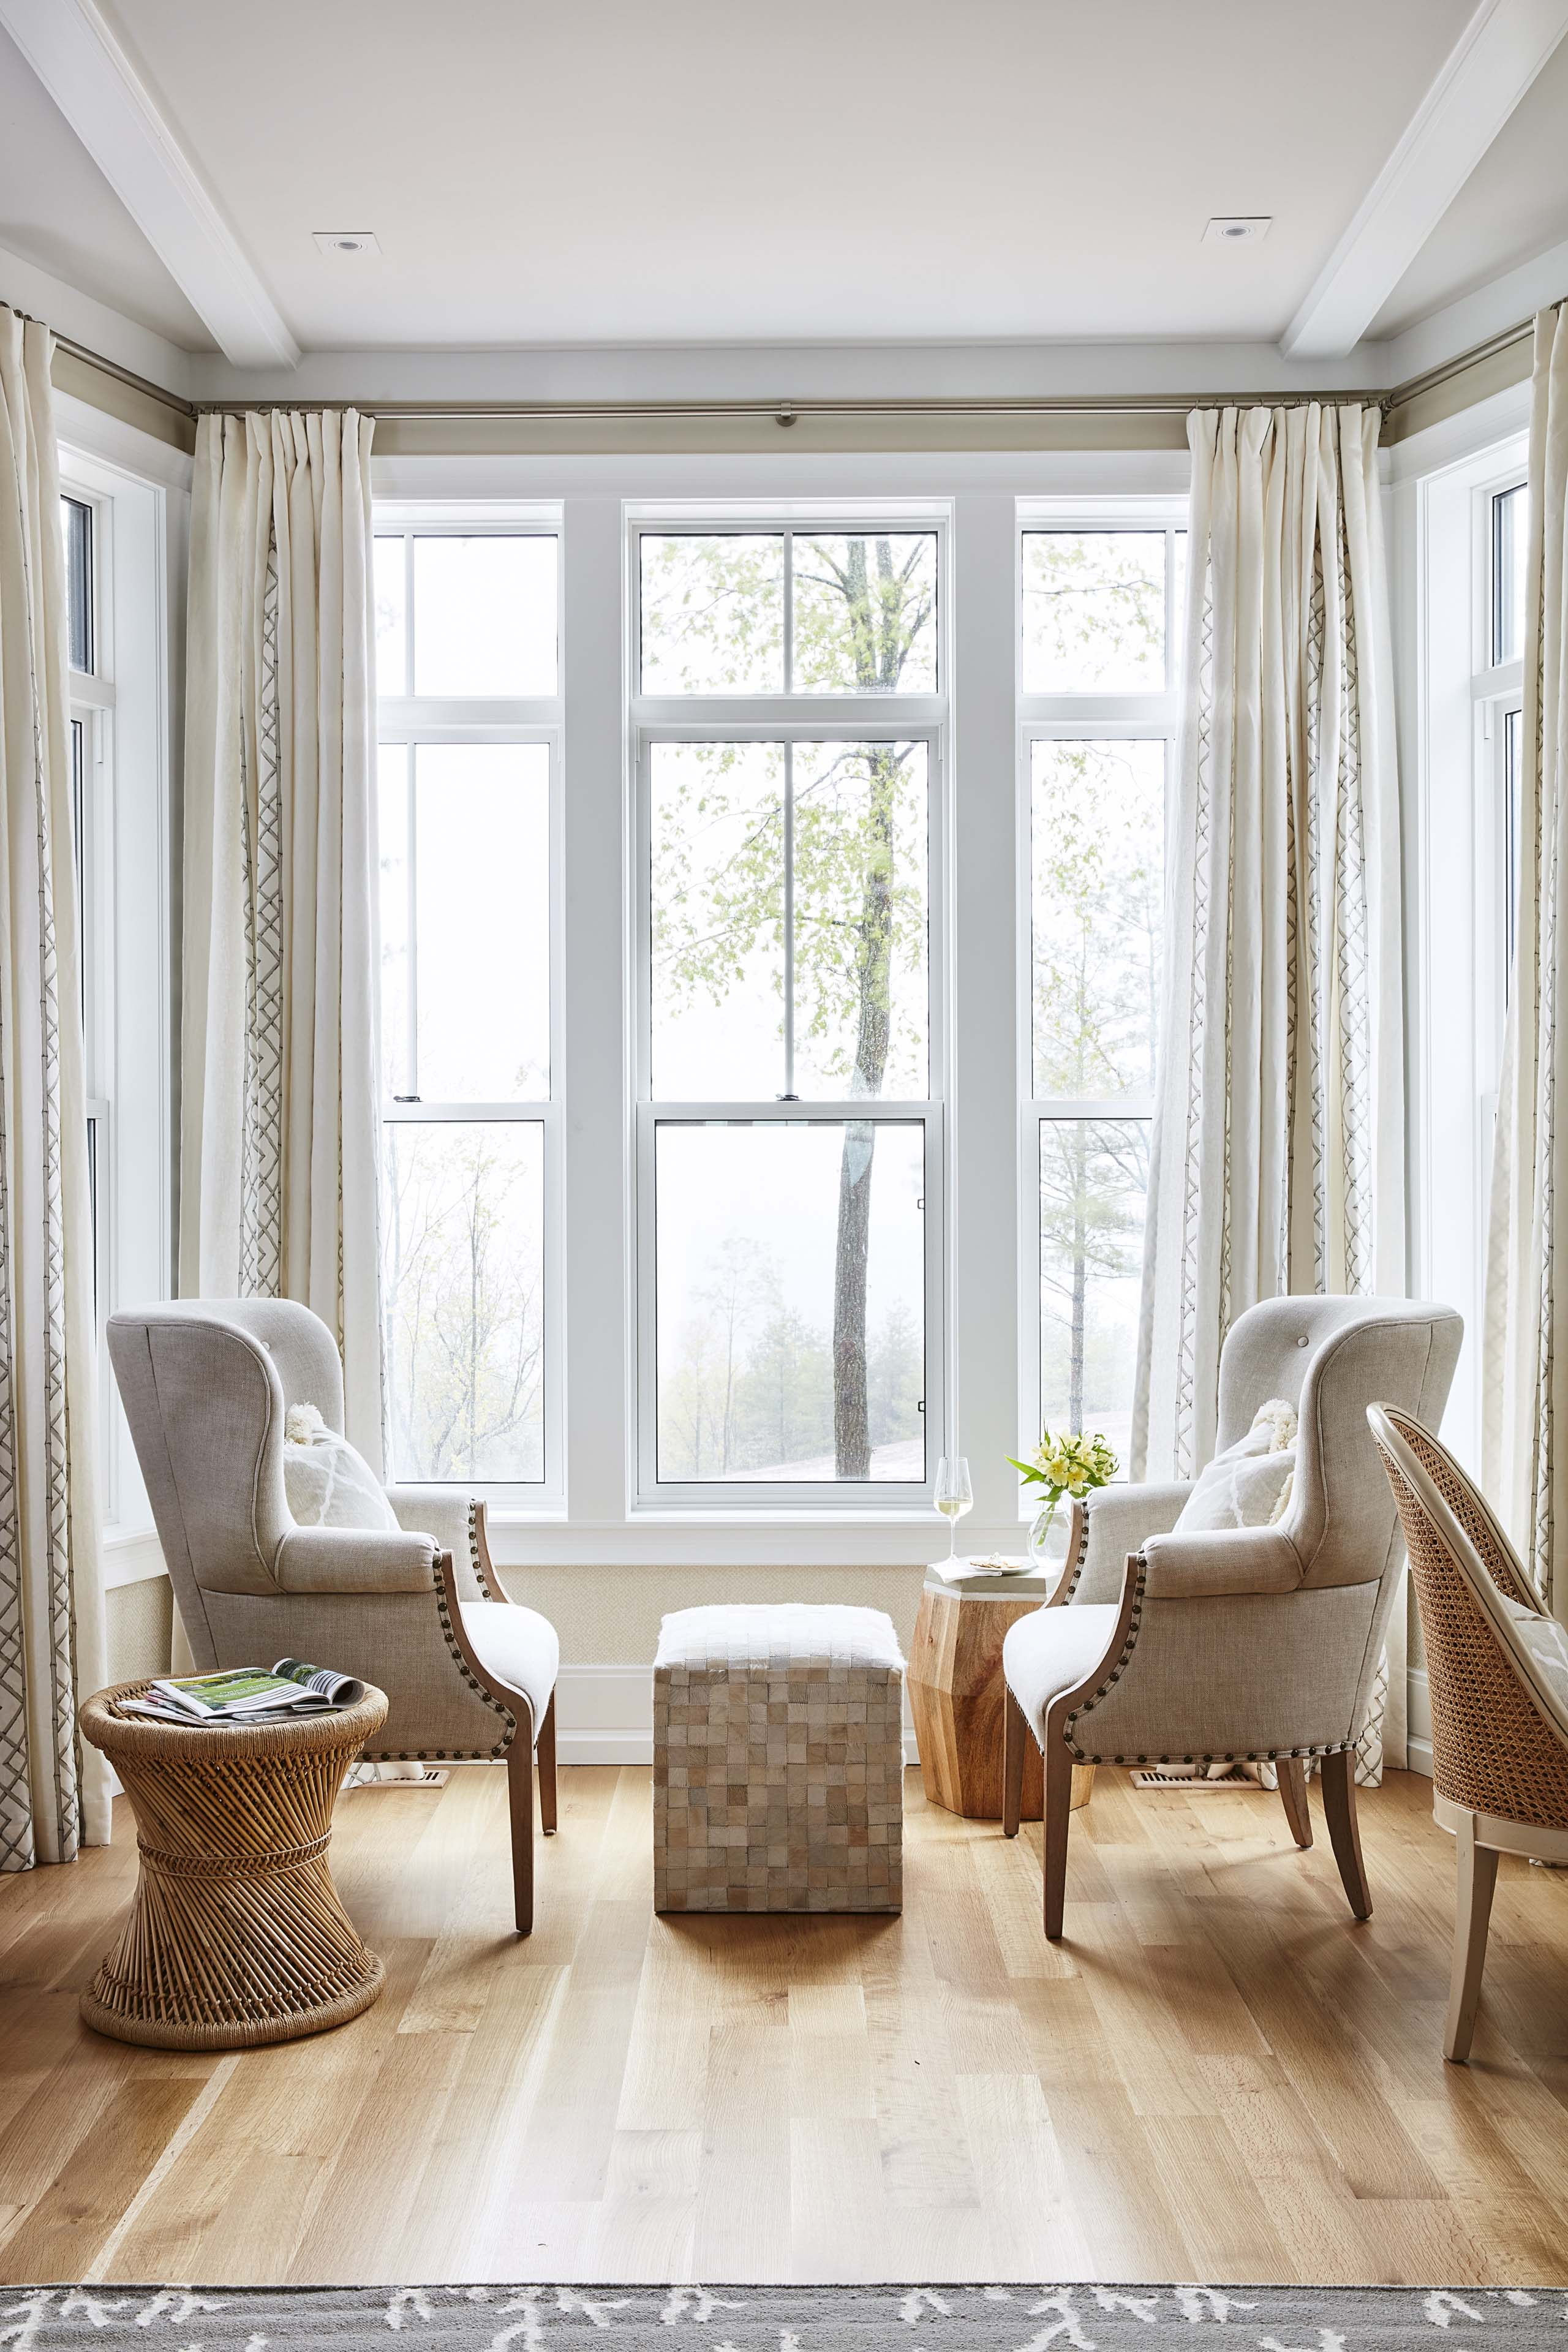 Large bay windows allow lots of natural light in this nook with wing chairs. #SarahRichardson #wingchairs